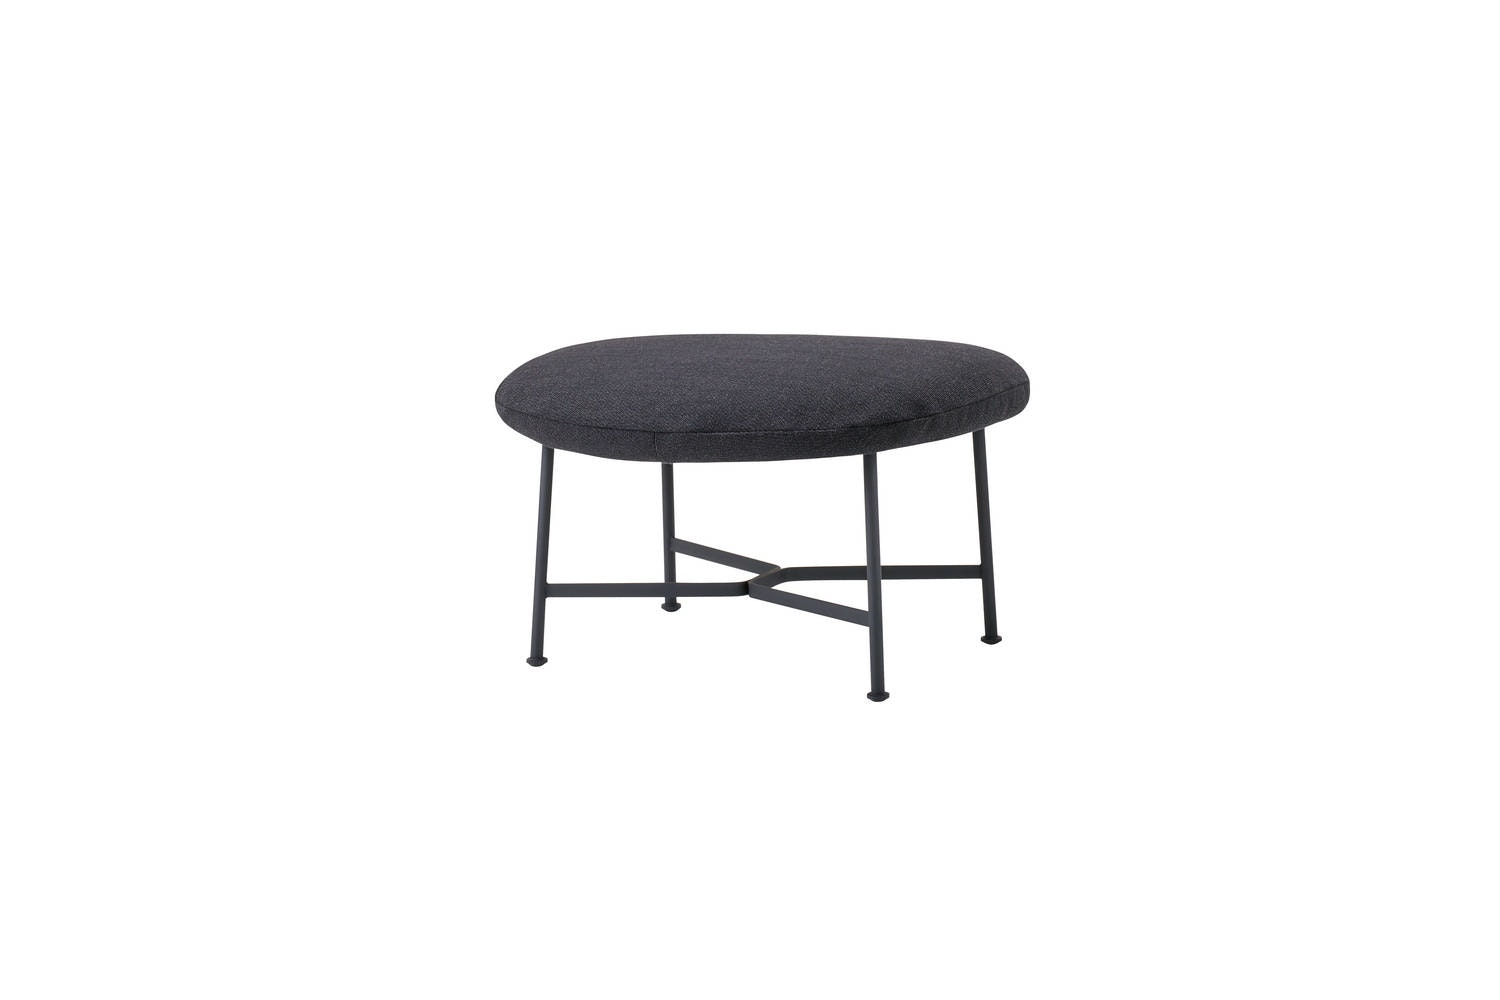 Caristo Ottoman by Tim Rundle for SP01